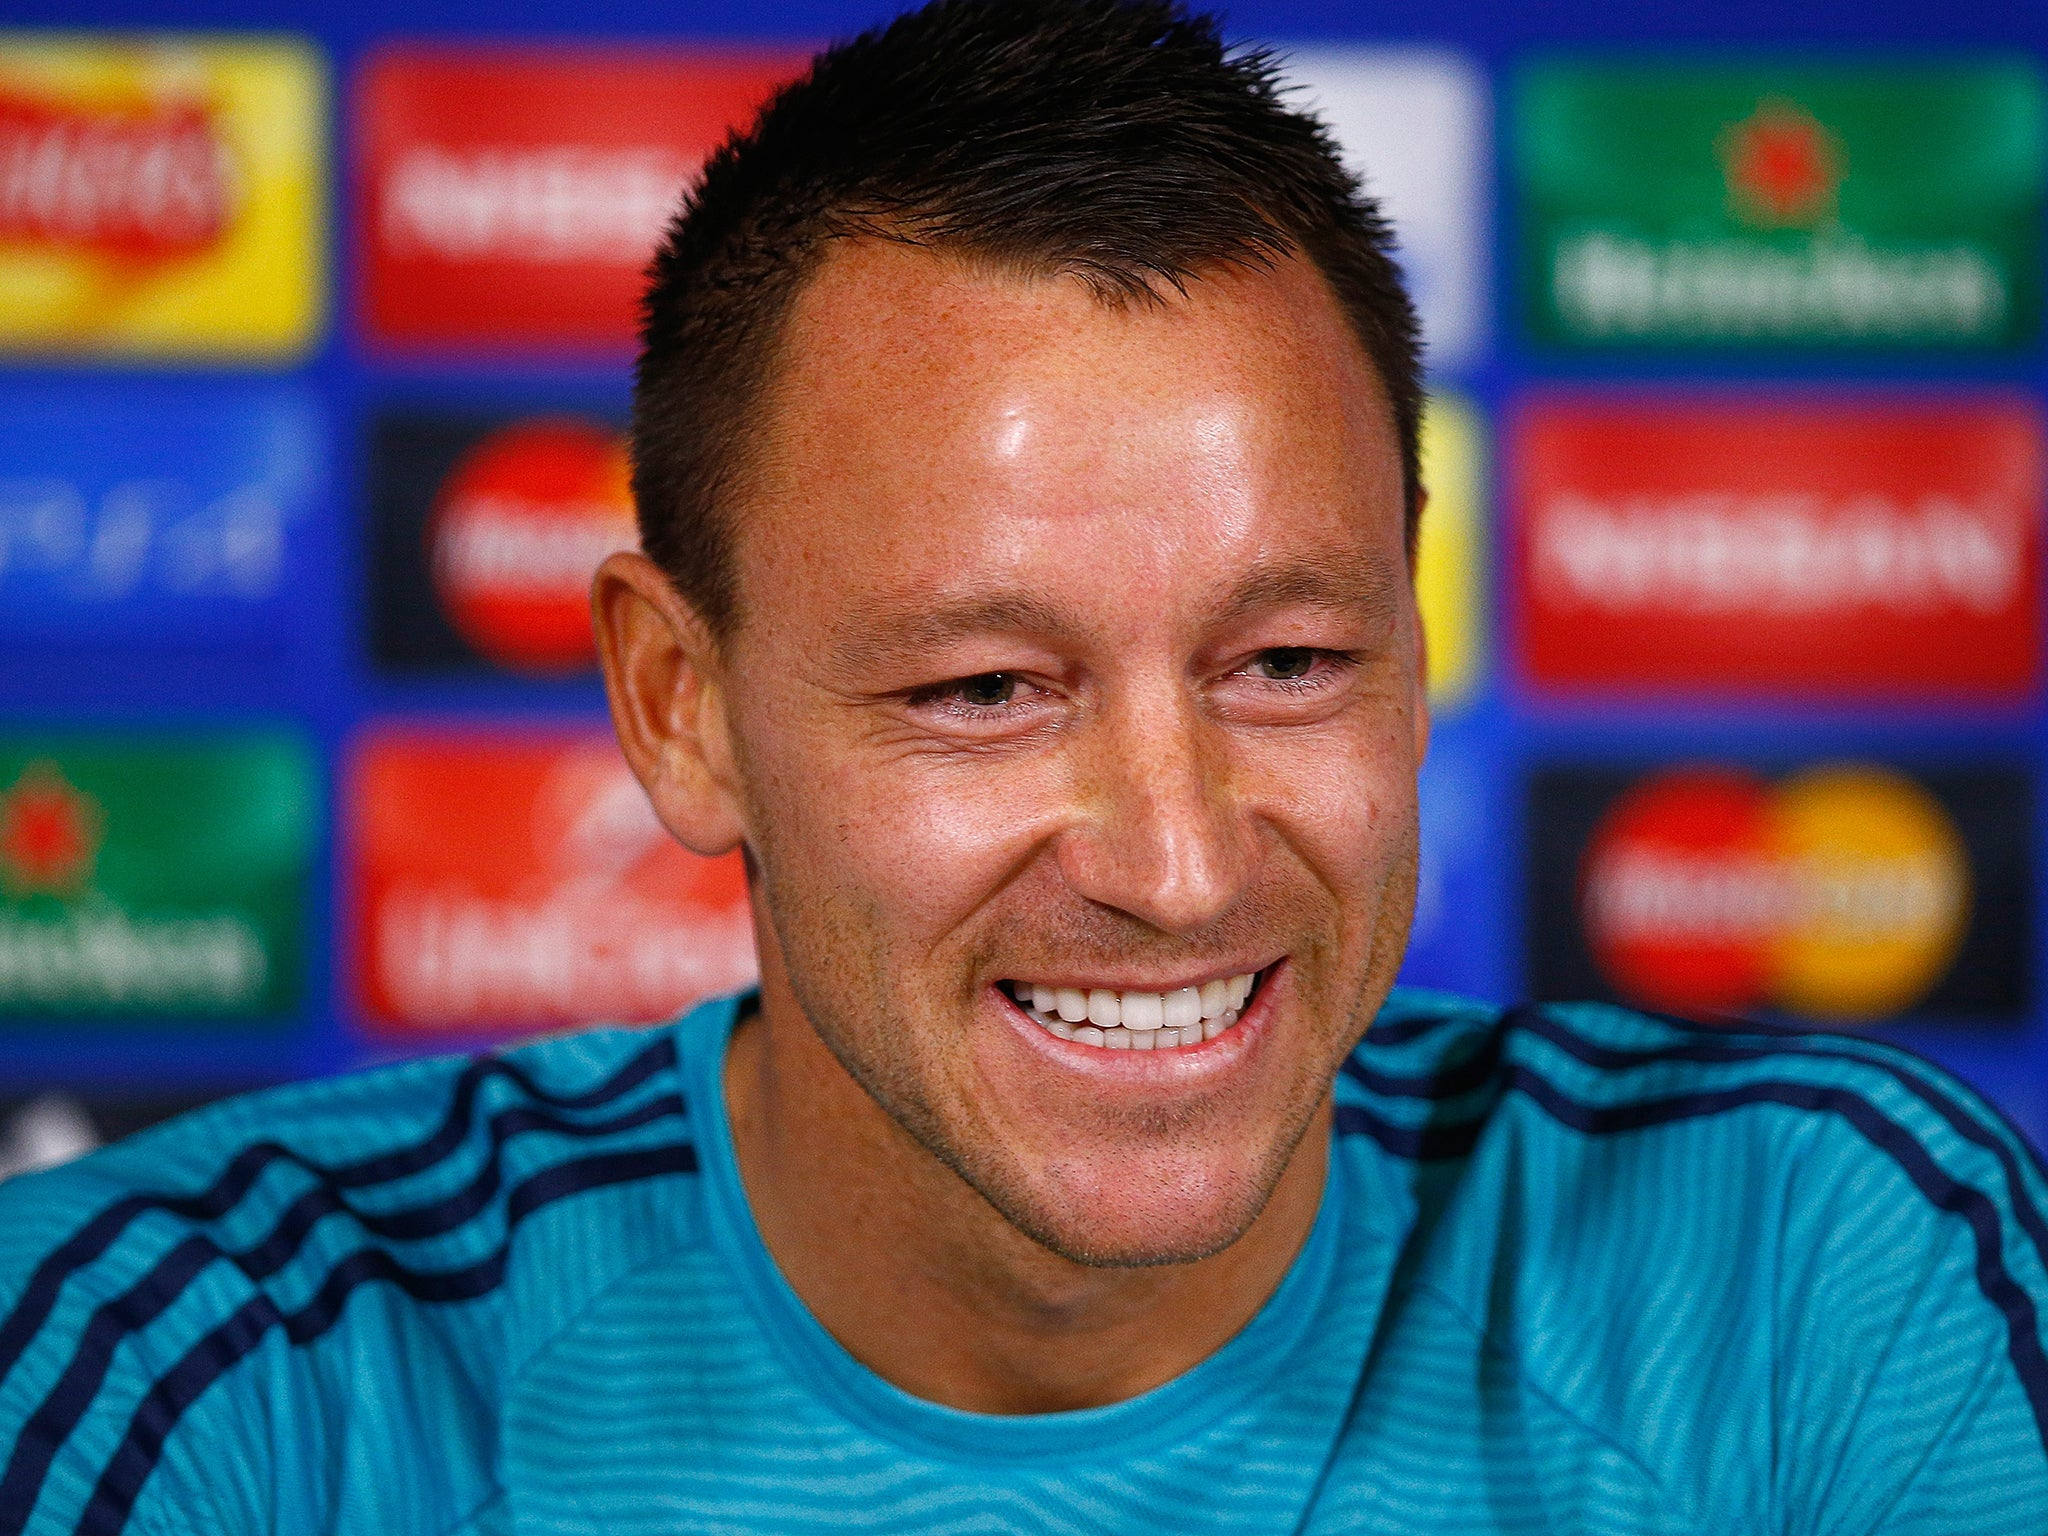 John Terry fires shot at Robbie Savage for being 'not good enough' to criticise Chelsea captain